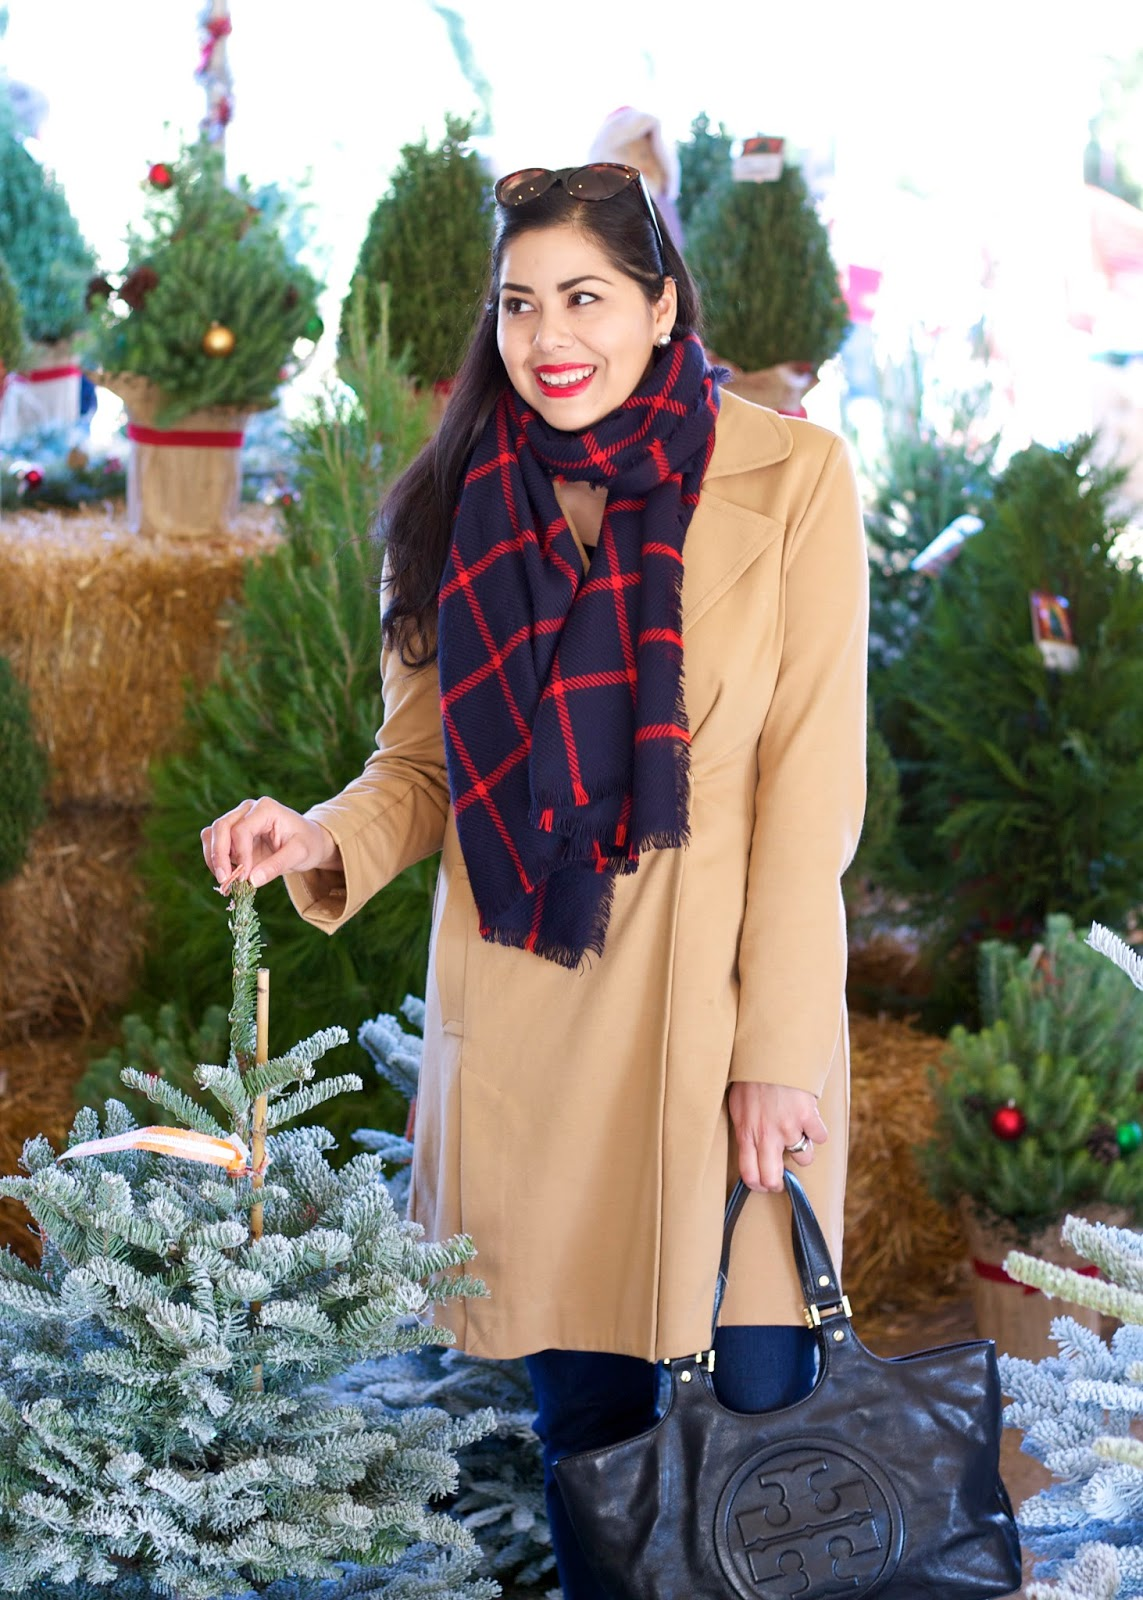 Christmas Tree Shopping, tartan scarf, pinery in bonita, red lips outfit